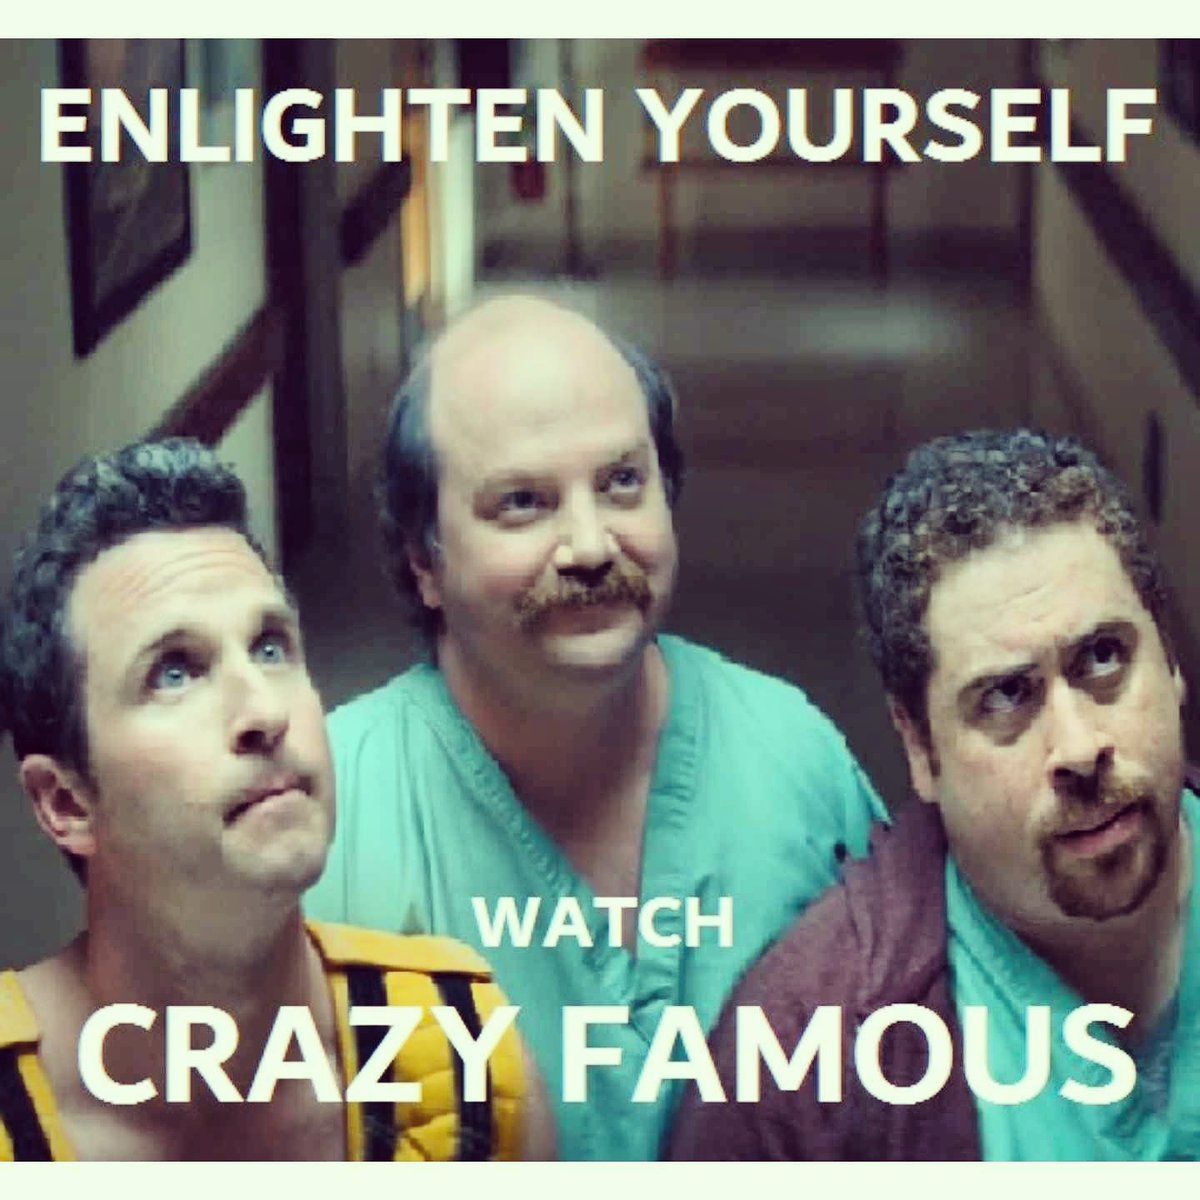 This #MemorialDayWeekend watch #CrazyFamous on @PrimeVideo   #famewhore #twitterfamous #fameobsession #RollingThunder  #jamesbond #drphil #lockdown2020 https://t.co/44SkezCKM8